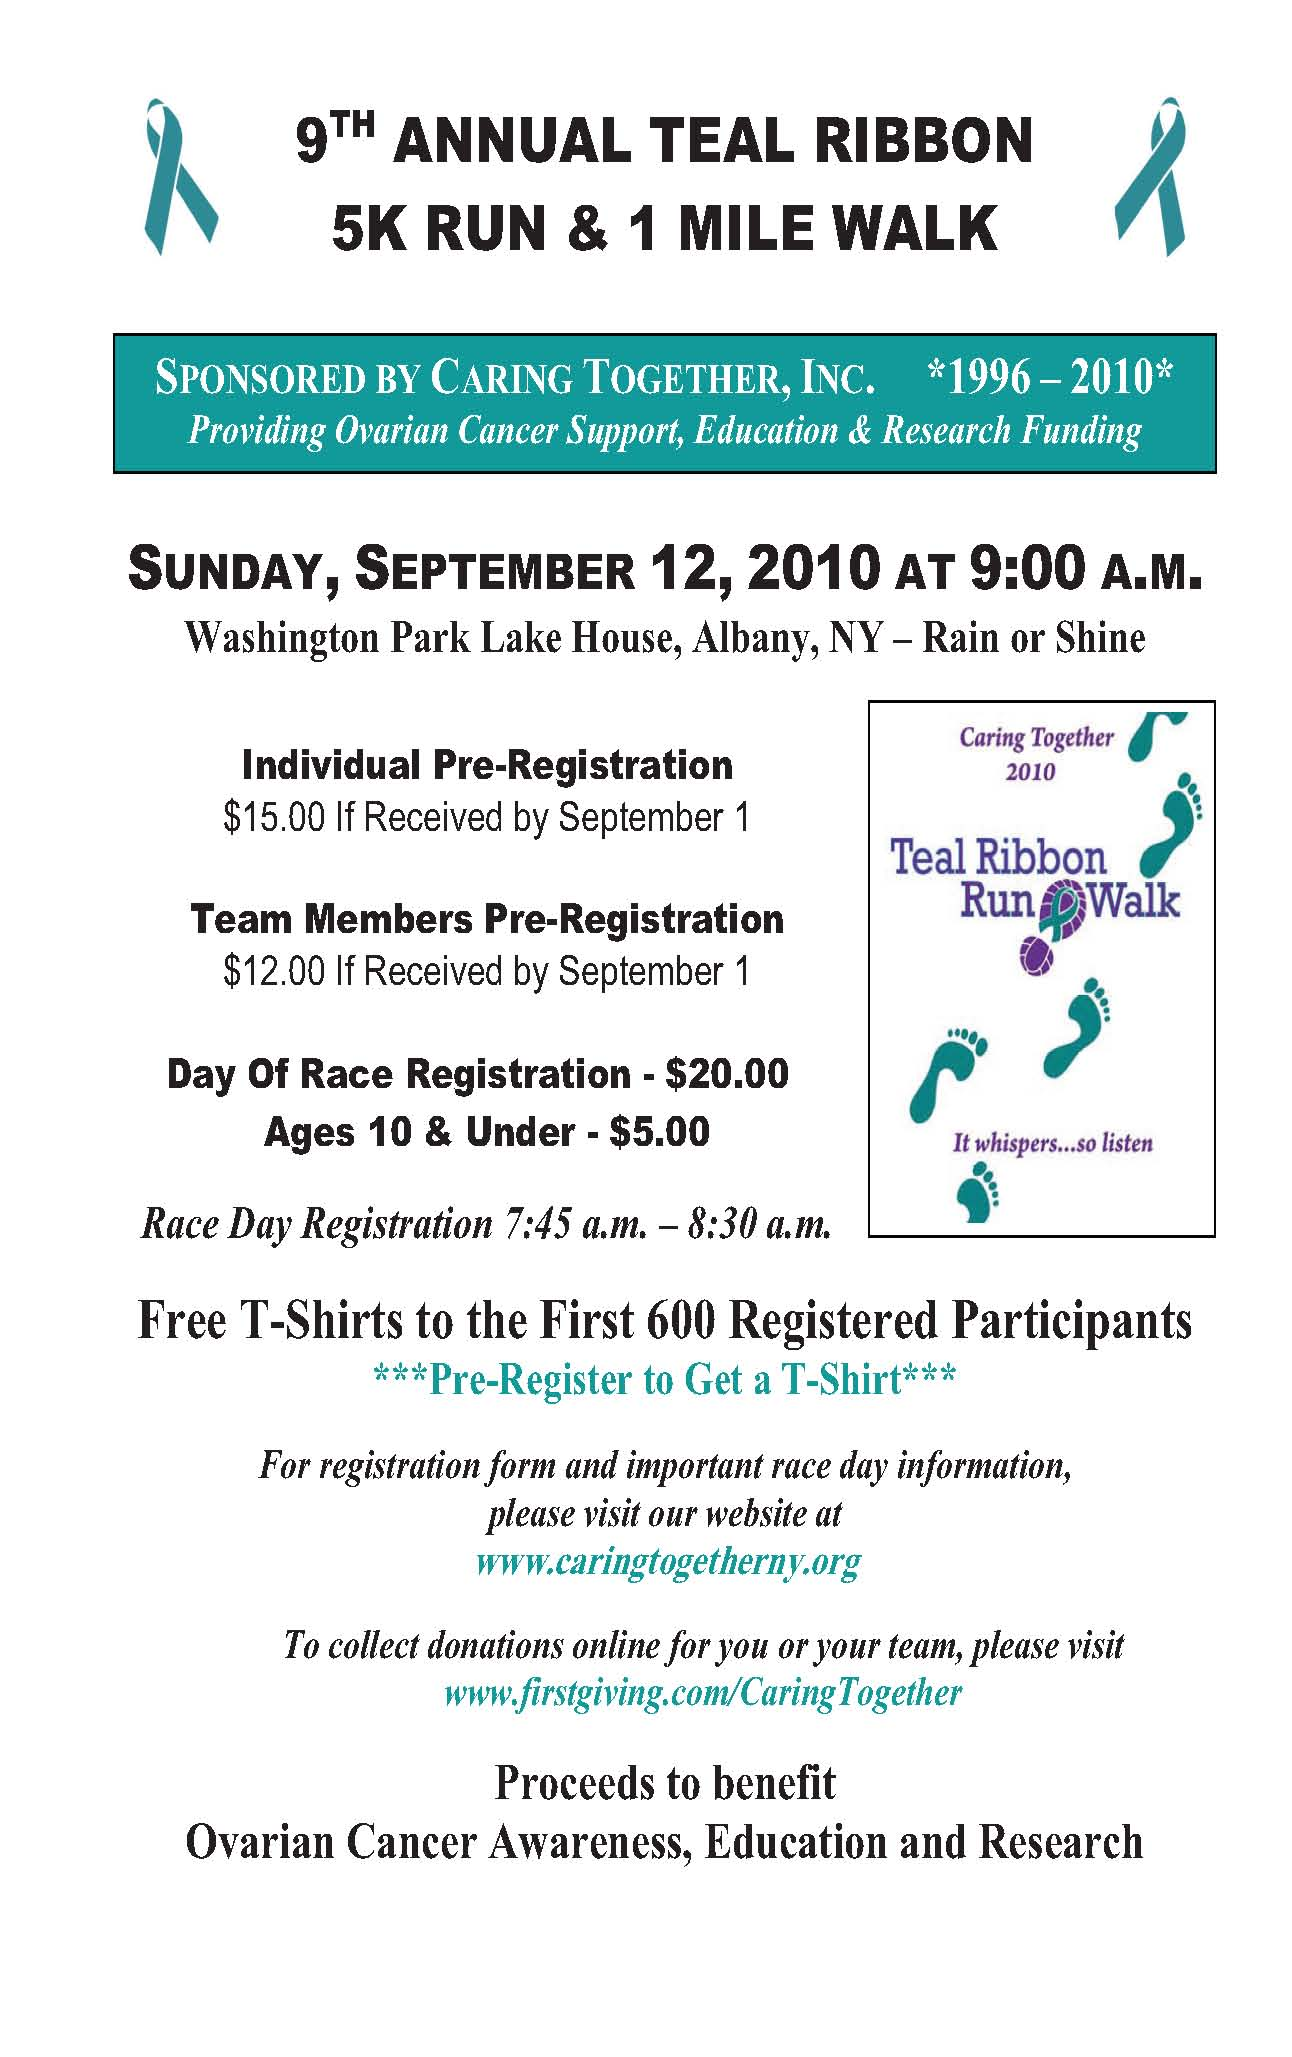 9th Annual Teal Ribbon Ovarian Cancer 5k Run Walk On September 12 Diversity And Inclusion Blog At Albany Law School